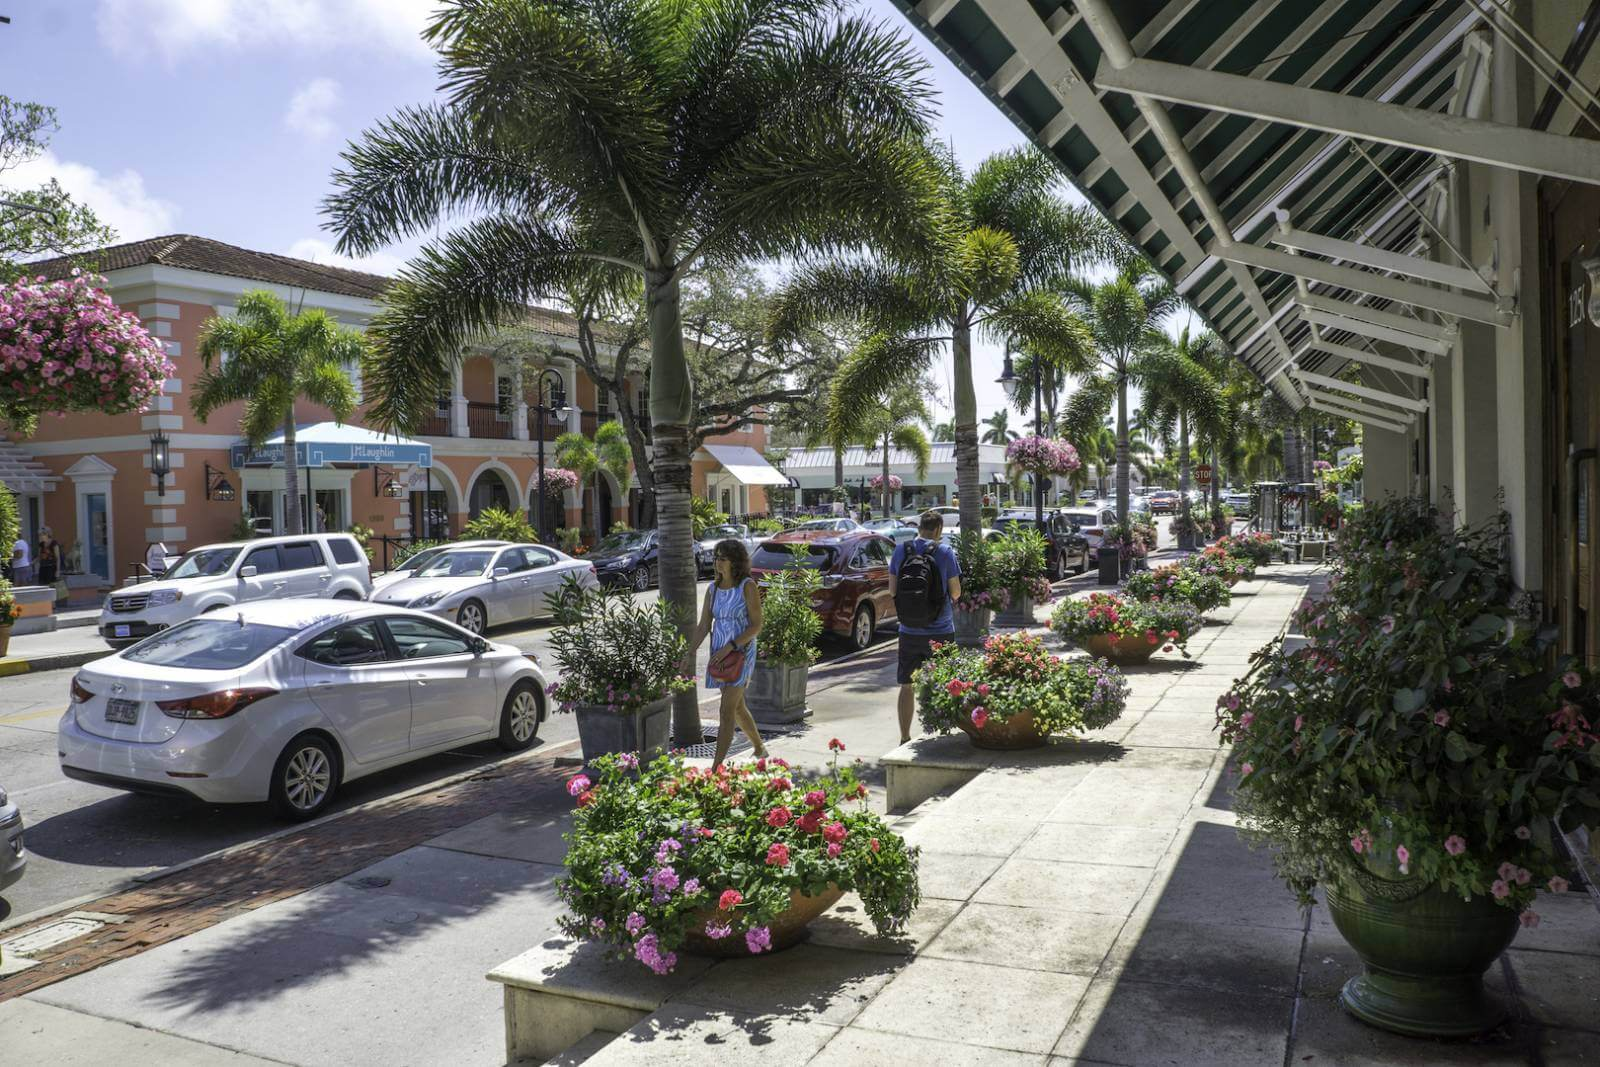 Stroll along Naples, Florida's Third Street South with its independent bookstores, art galleries, jewellers, and fashion boutiques and enjoy coffee or lunch at one of the attractive cafés and restaurants. Photo by Jennifer Brinkman. #NaplesFlorida #thirdstreetsouth #shopping #artgalleries #vacation